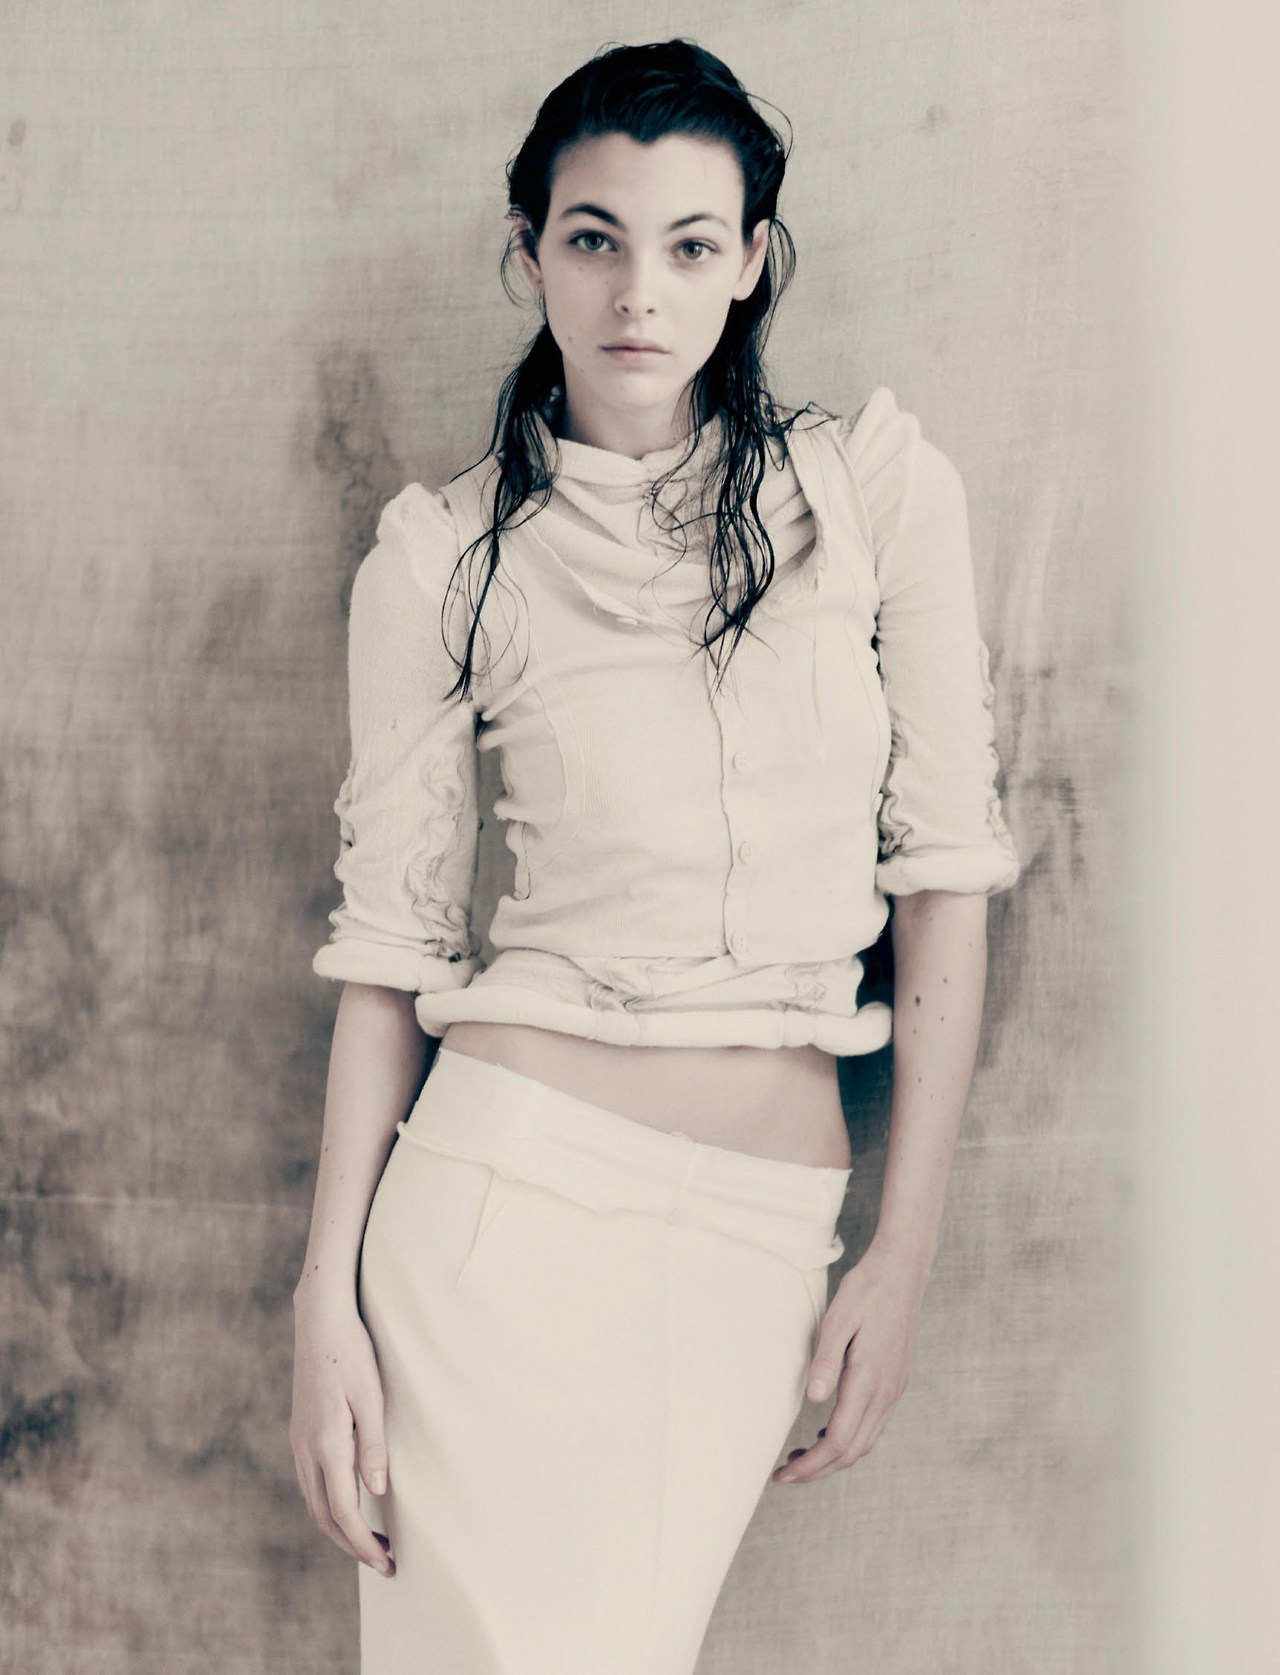 Vittoria Ceretti photographed by Paolo Roversi for Interview Magazine, April 2017